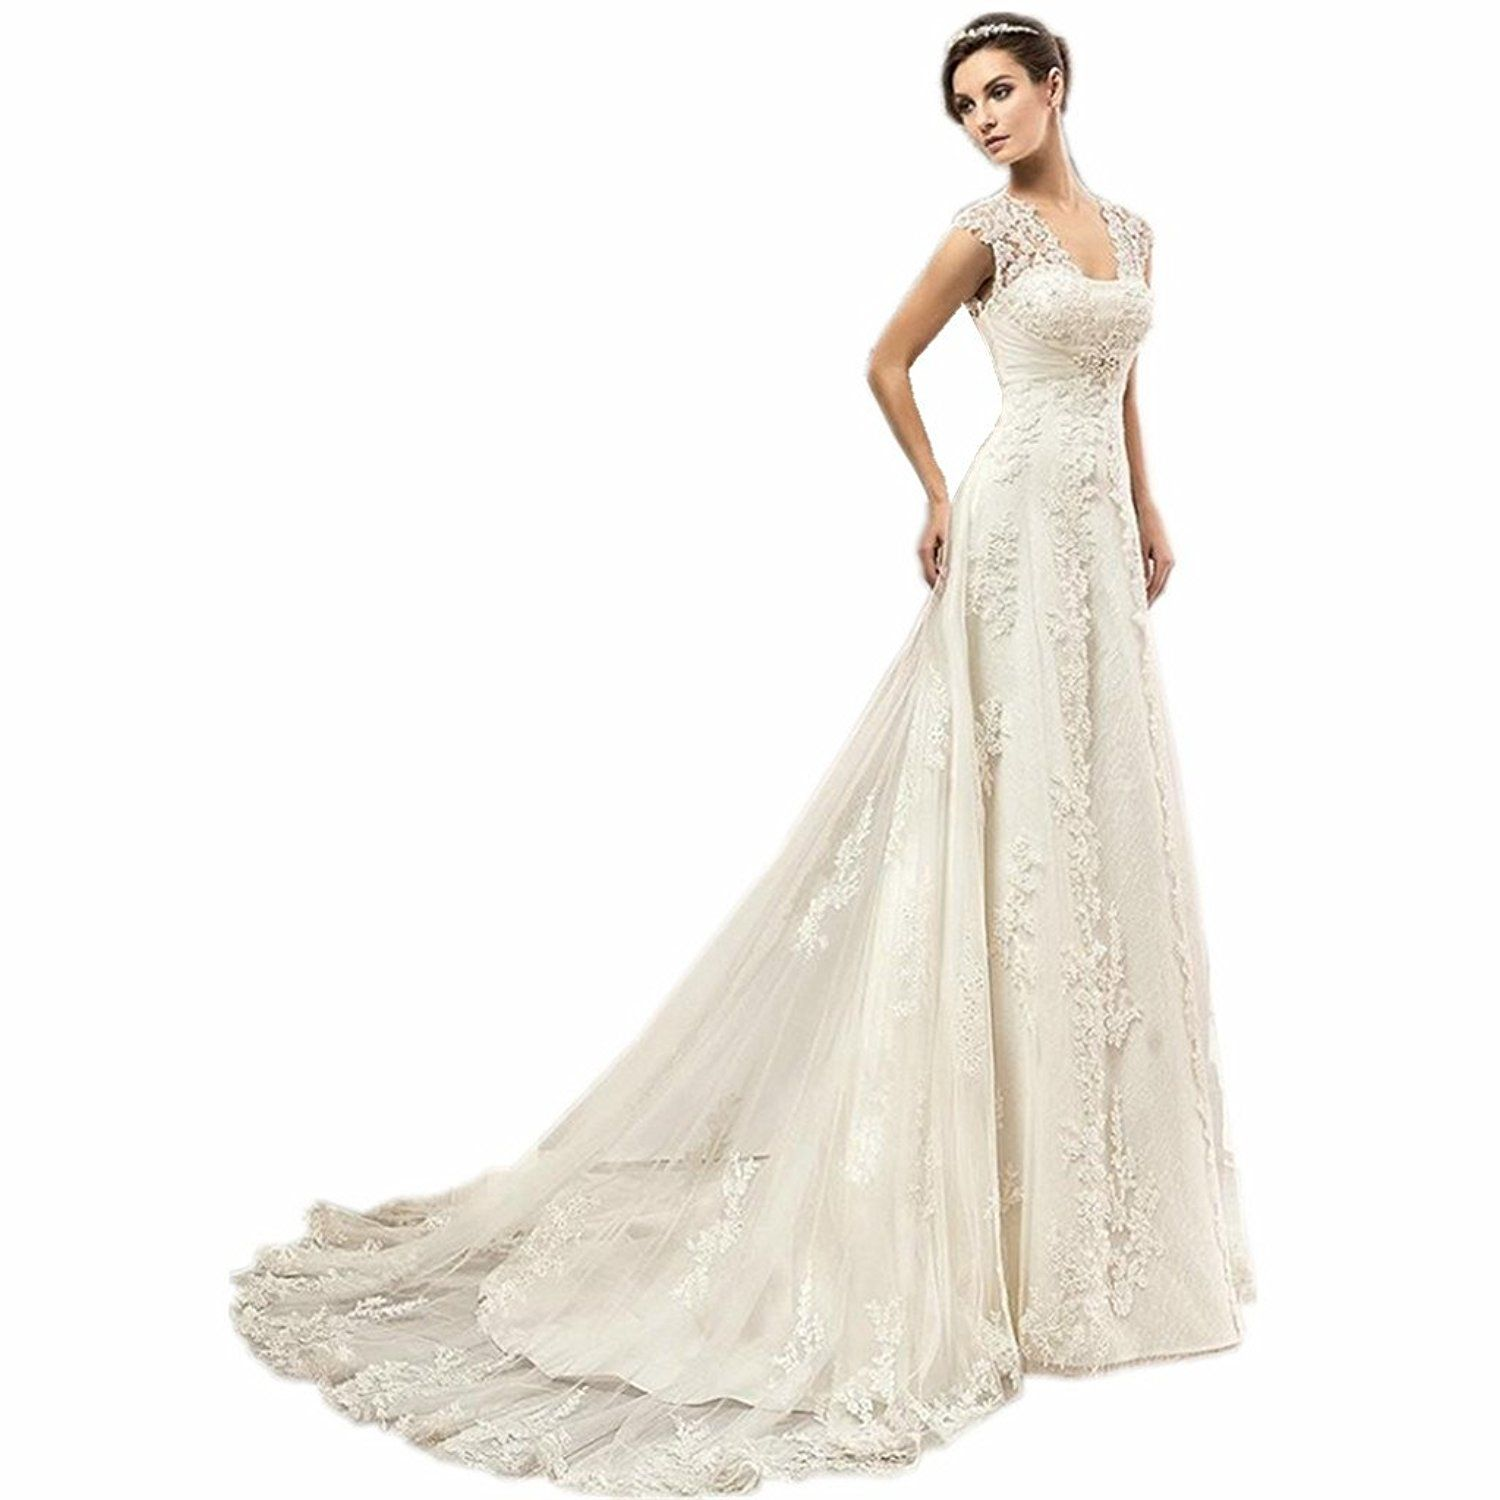 Yuakou womenus sexy cap sleeve beaded lace wedding dress for bride